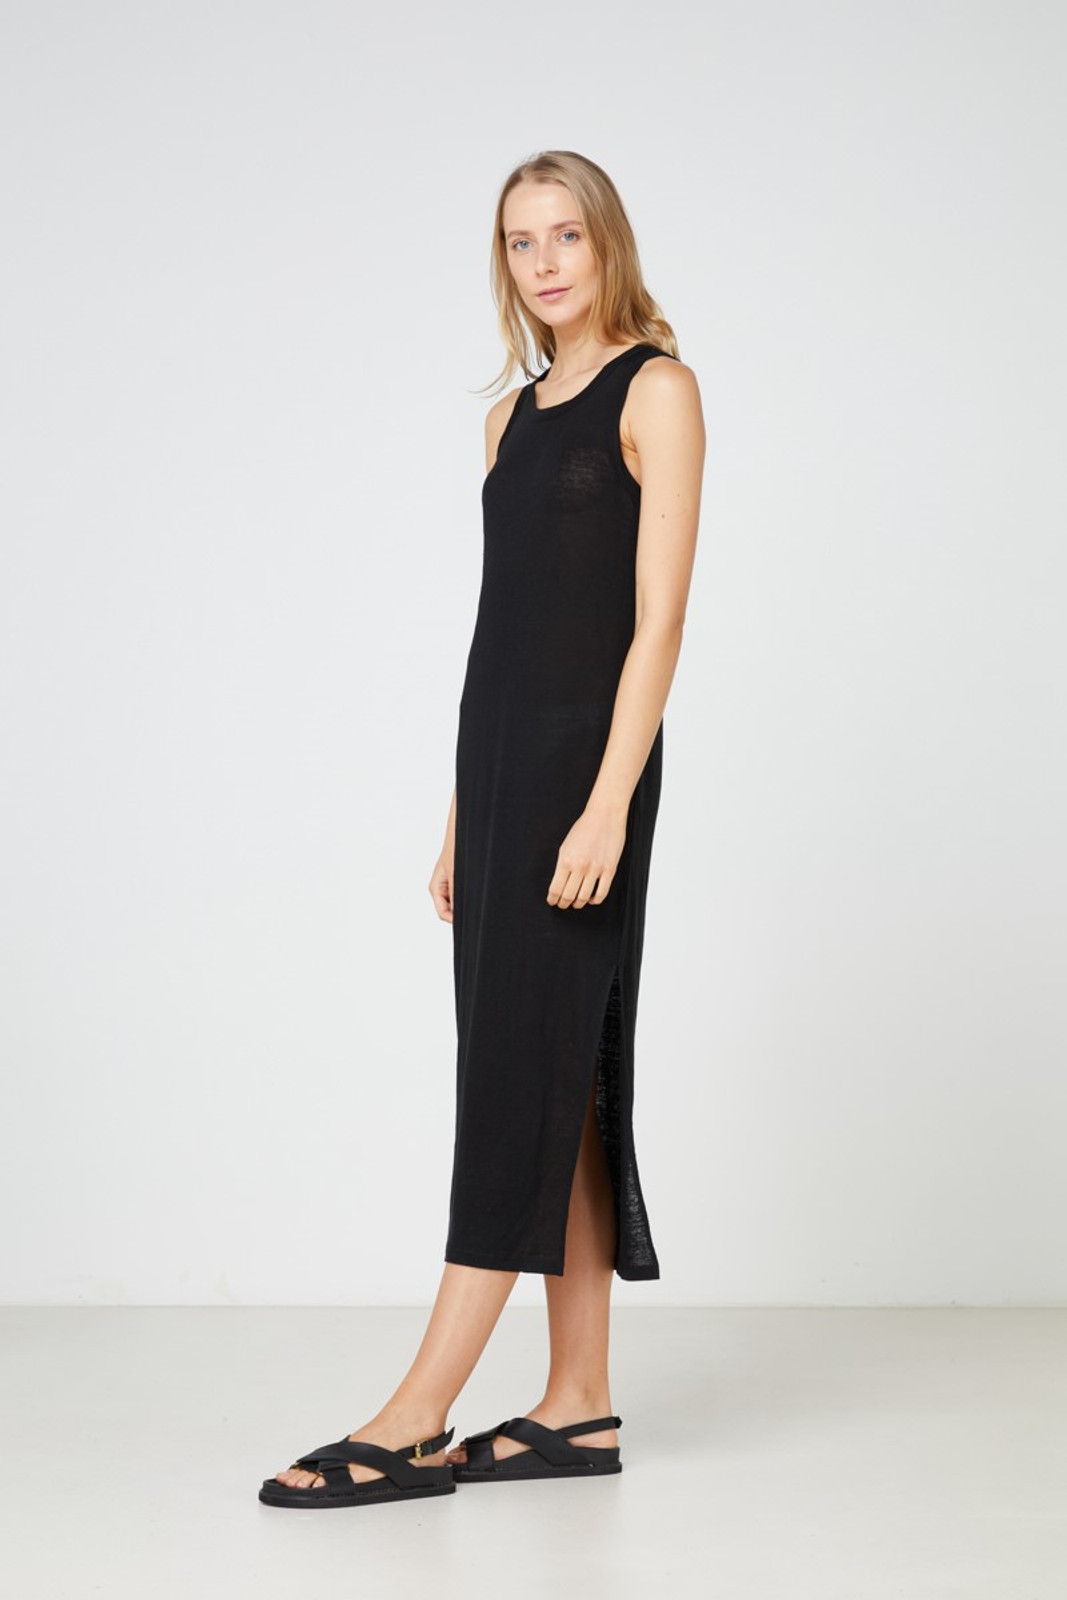 Elka Collective EC Linen Tank Dress 2.0 Black  2